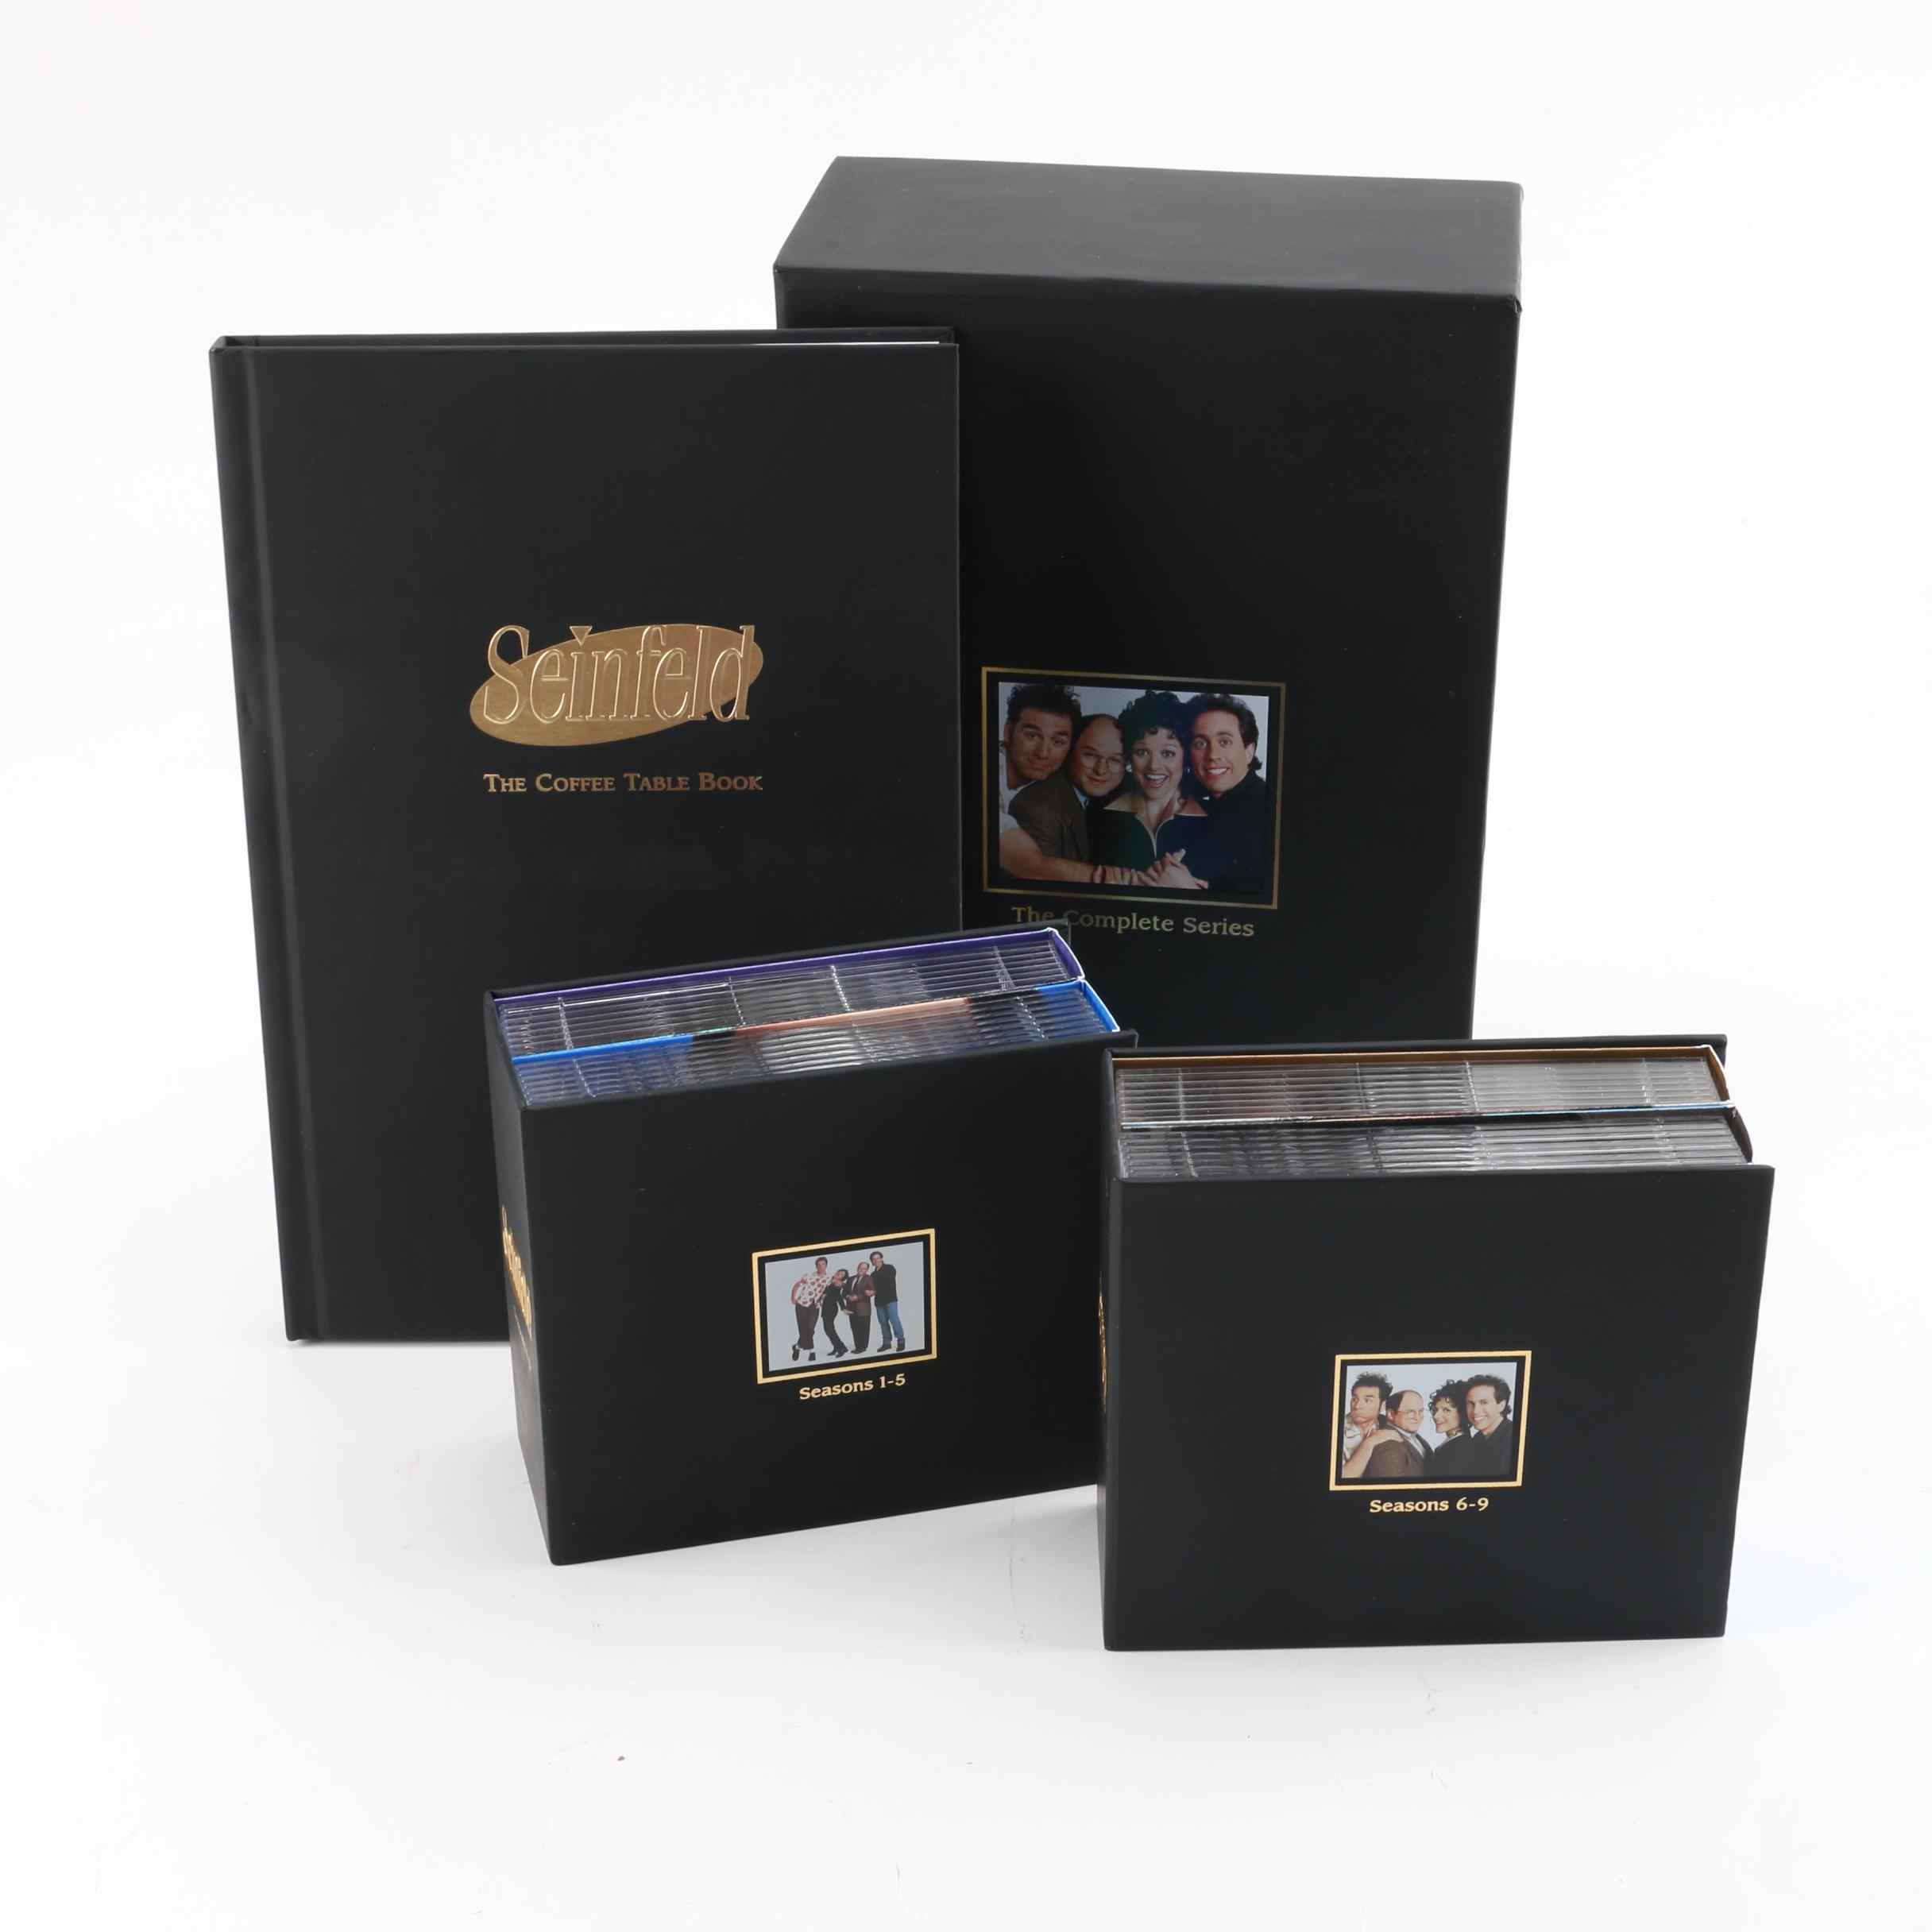 Seinfeld Complete DVD Box Set with The Coffee Table Book EBTH